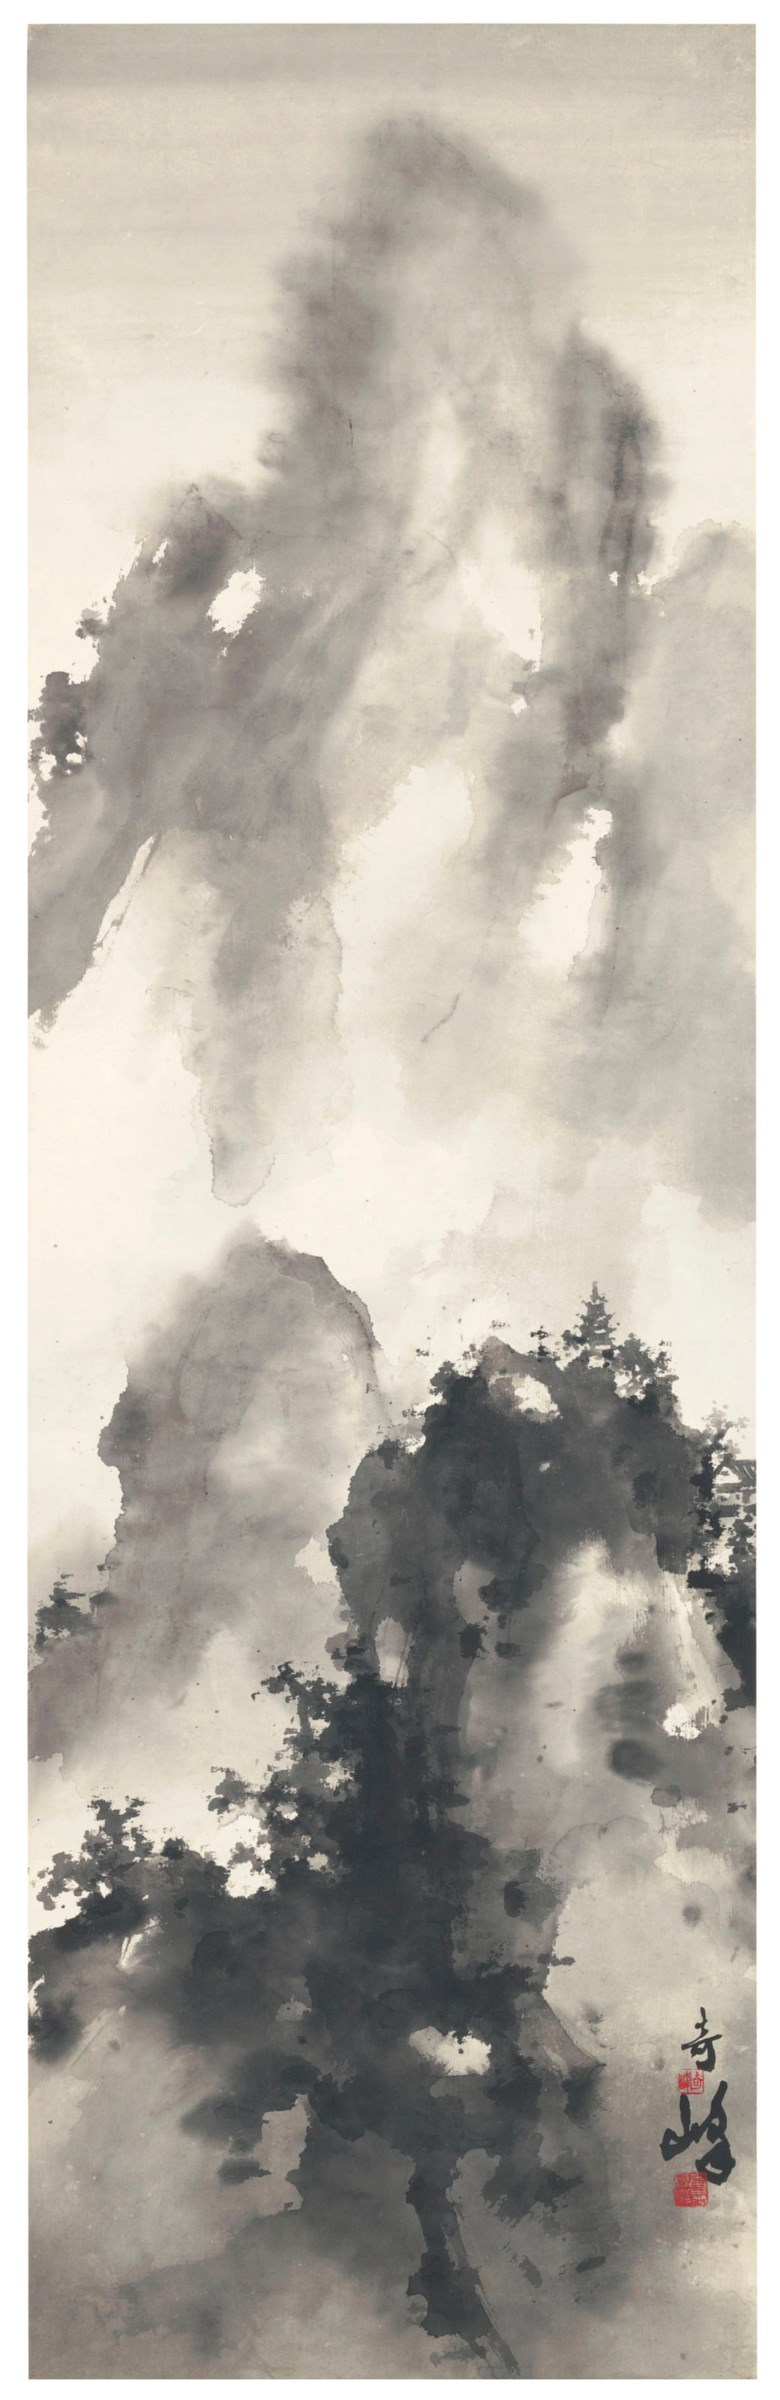 Gao Qifeng (1889-1933), Misty Peaks. 51½ x 13½  in (137.8 x 34.3  cm). Estimate $20,000-30,000. Offered in Fine Chinese Paintings on 11 September 2018 at Christie's in New York